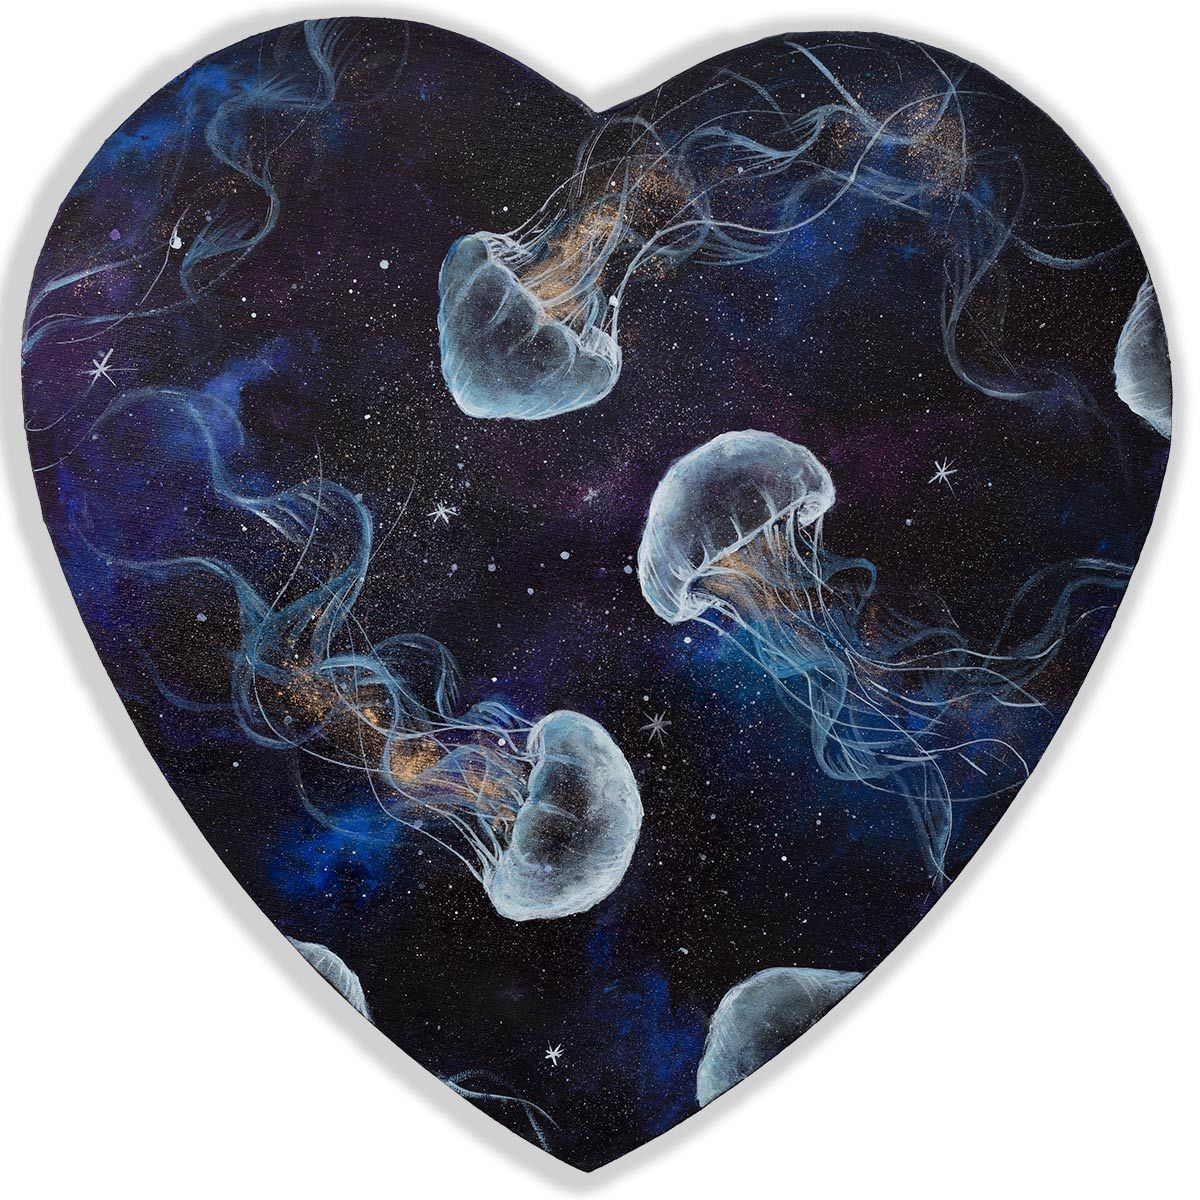 Heart of My Universe - Original - SOLD